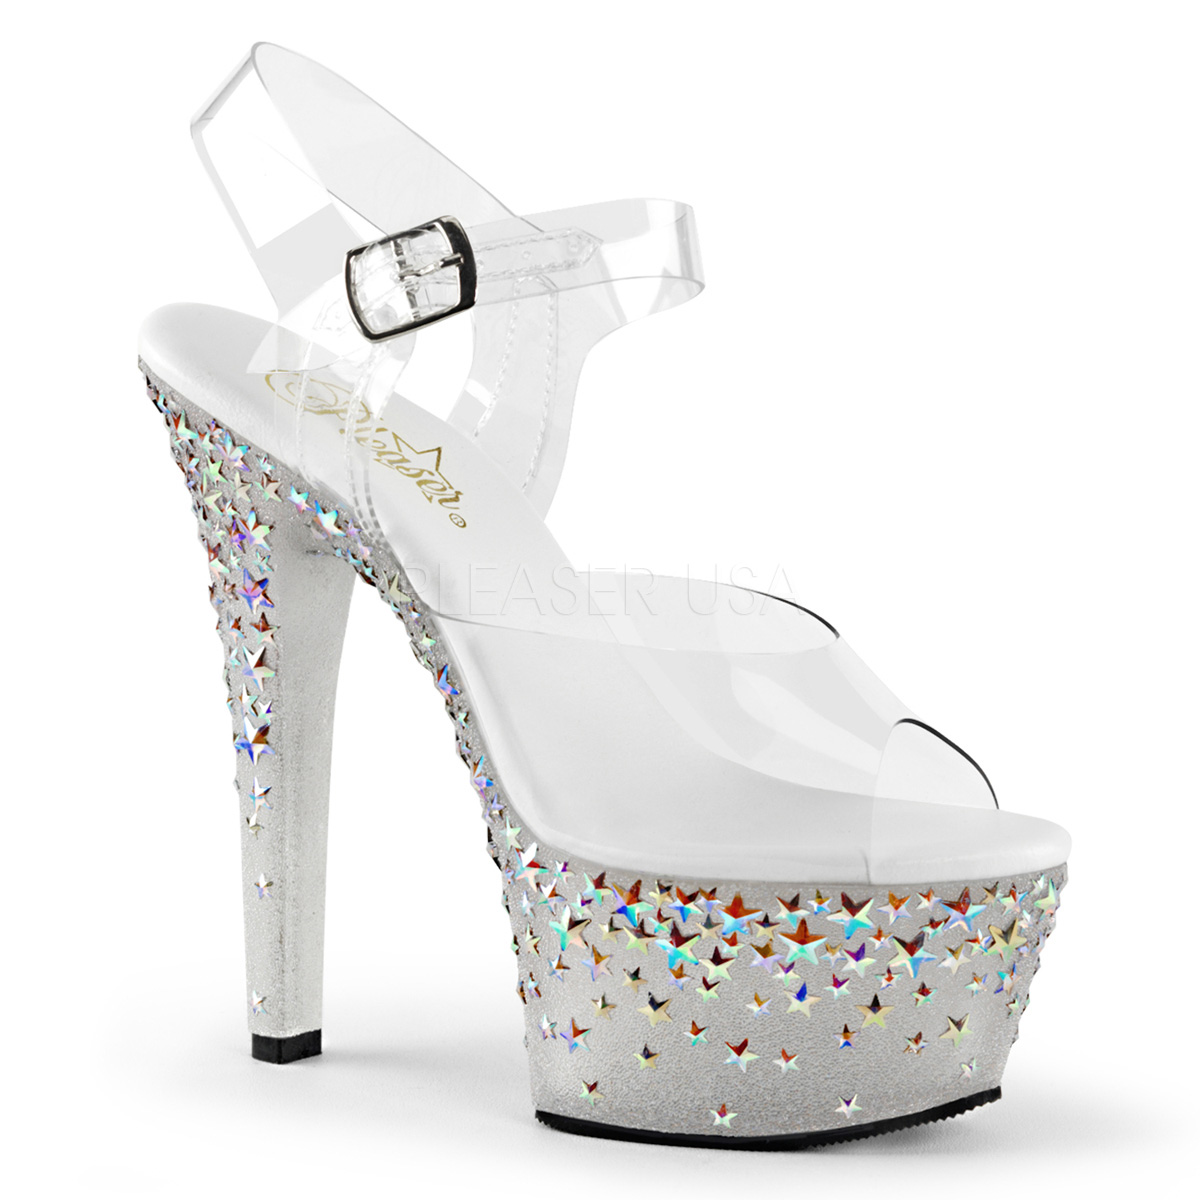 6 Inch Stiletto Heel Hologram Stars Platform Sandals